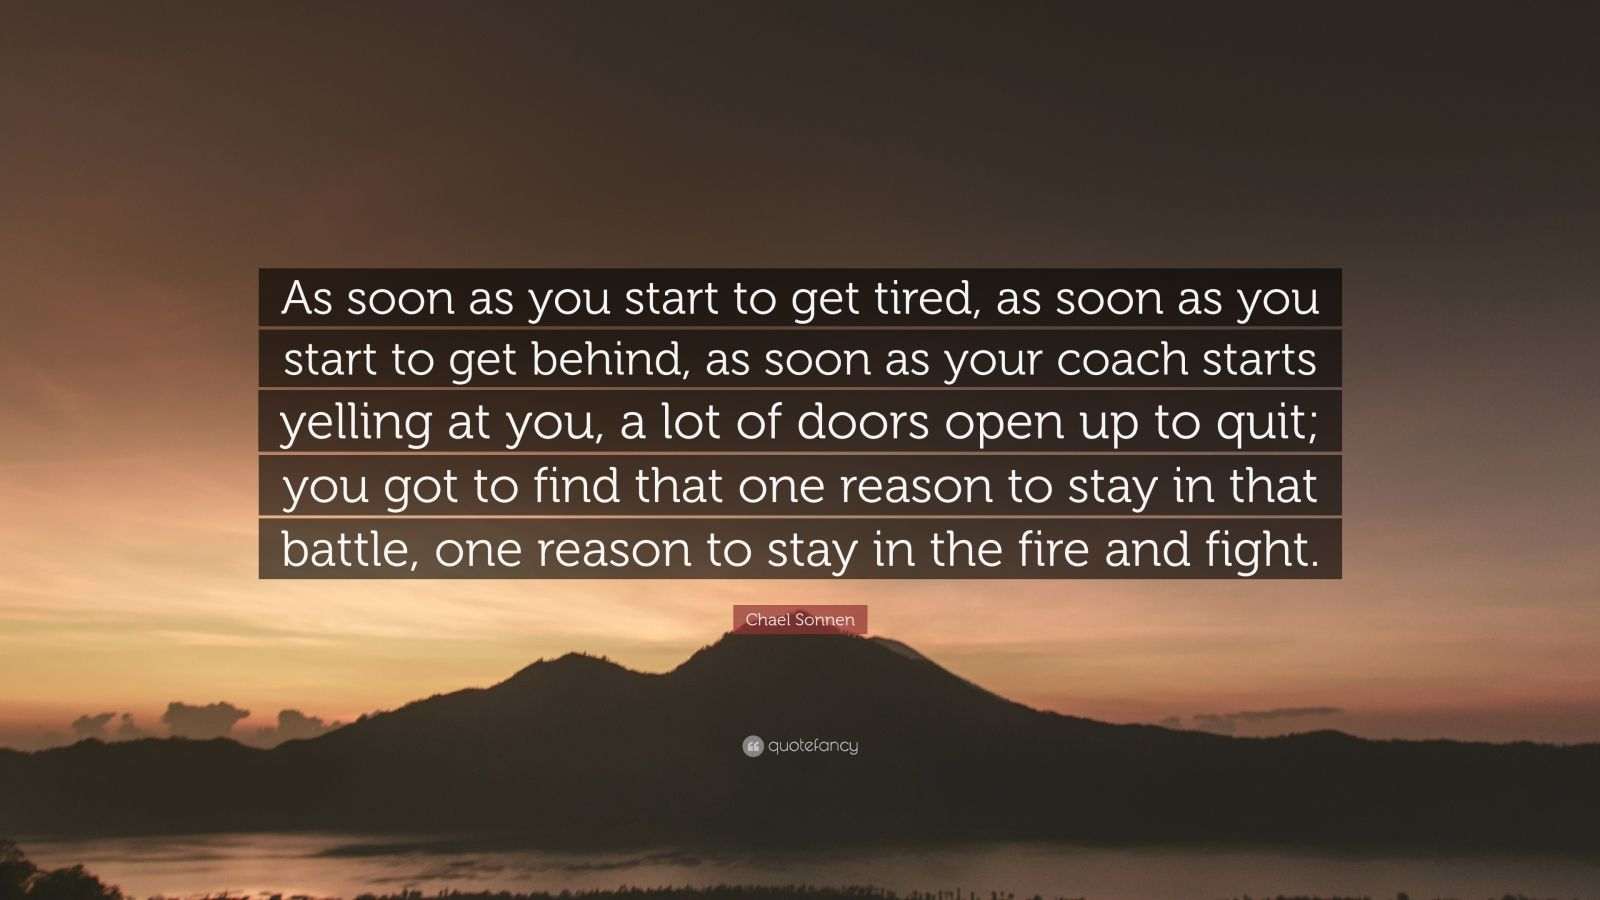 "Chael Sonnen Quote: ""As soon as you start to get tired, as soon as you start to get behind, as soon as your coach starts yelling at you, a lot of doors open up to quit; you got to find that one reason to stay in that battle, one reason to stay in the fire and fight."""